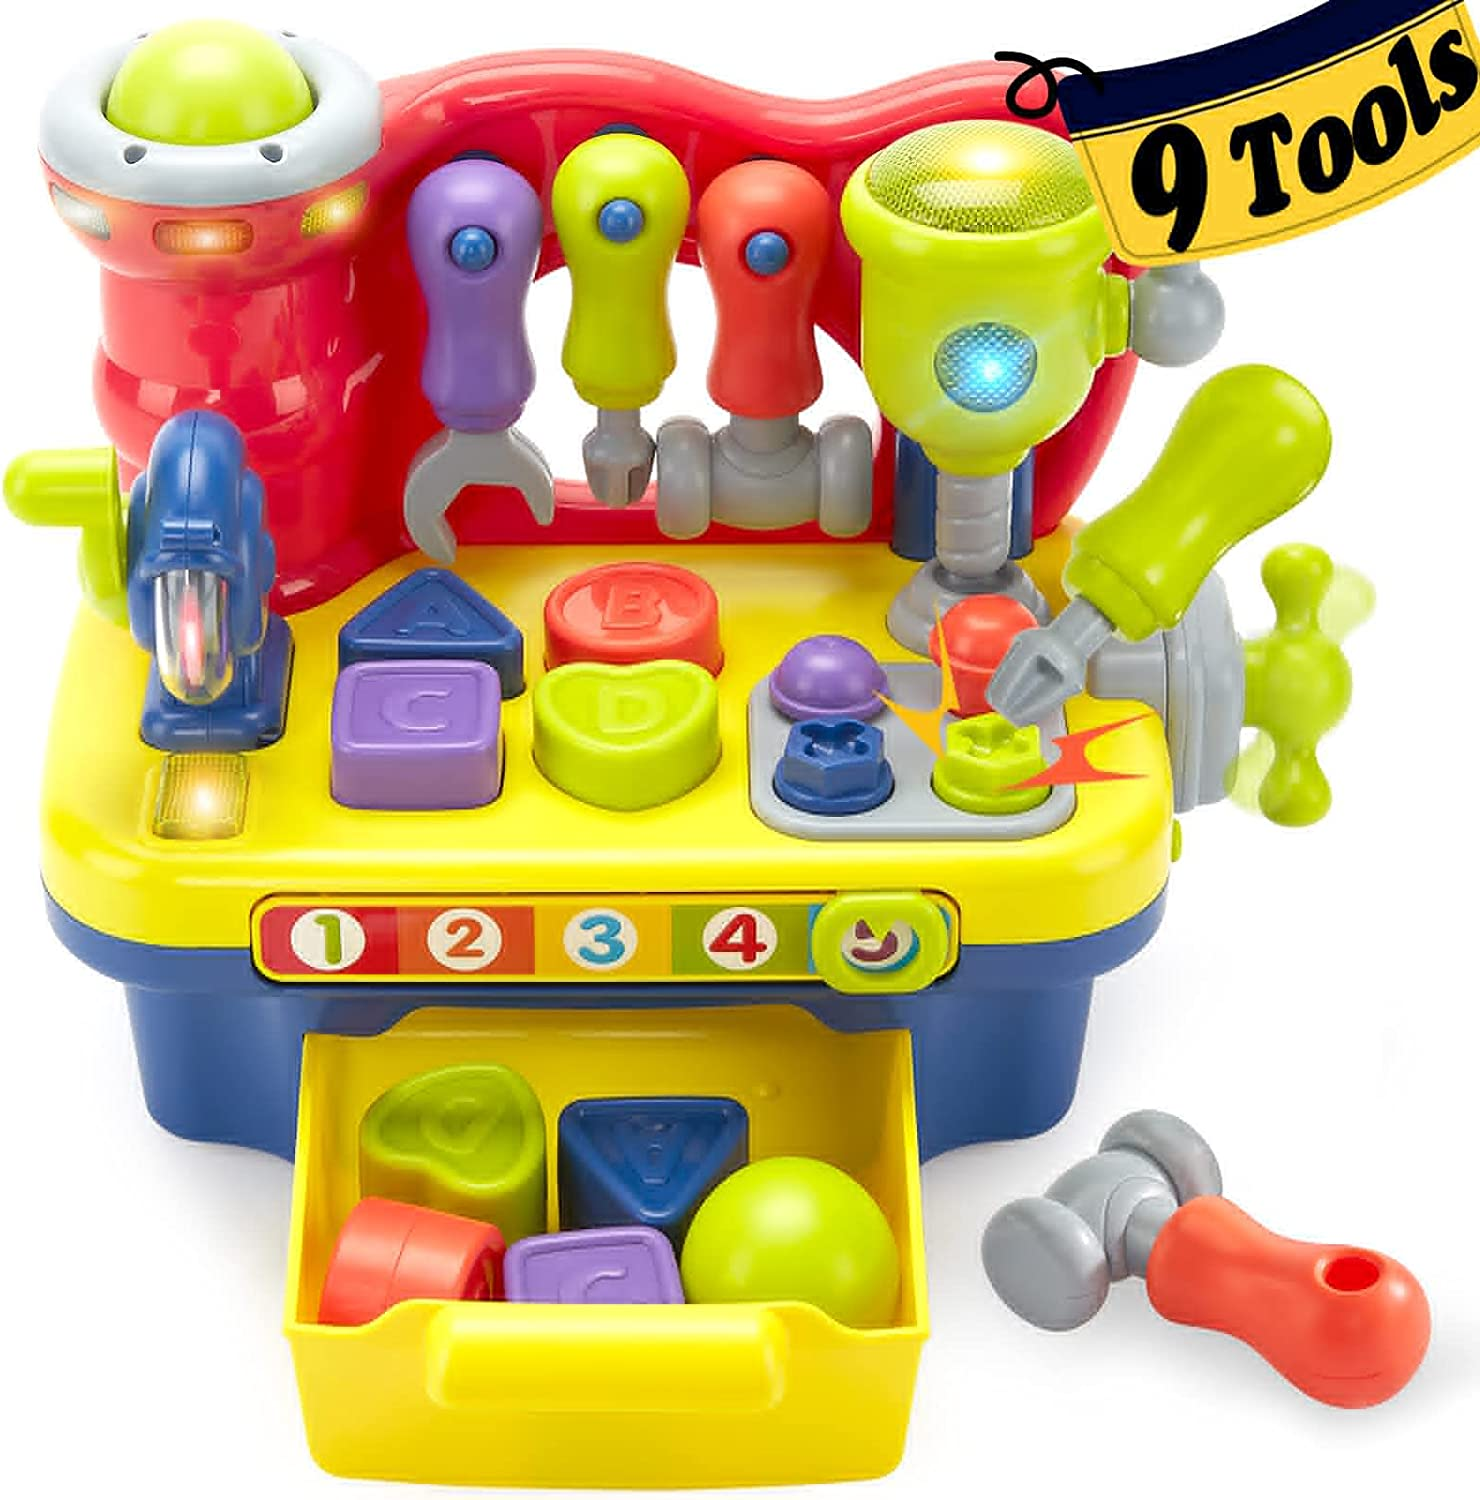 Hahaland Toys for 1 Year Old Boy Gifts Girl Toy, Multifunctional Music Light Workbench for Baby Toys 12-18 Months, Toddler Toys Age 1-2 Baby Boy Toys Gifts Toys for 2 3 Year Old Boy Girl Birthday Gift